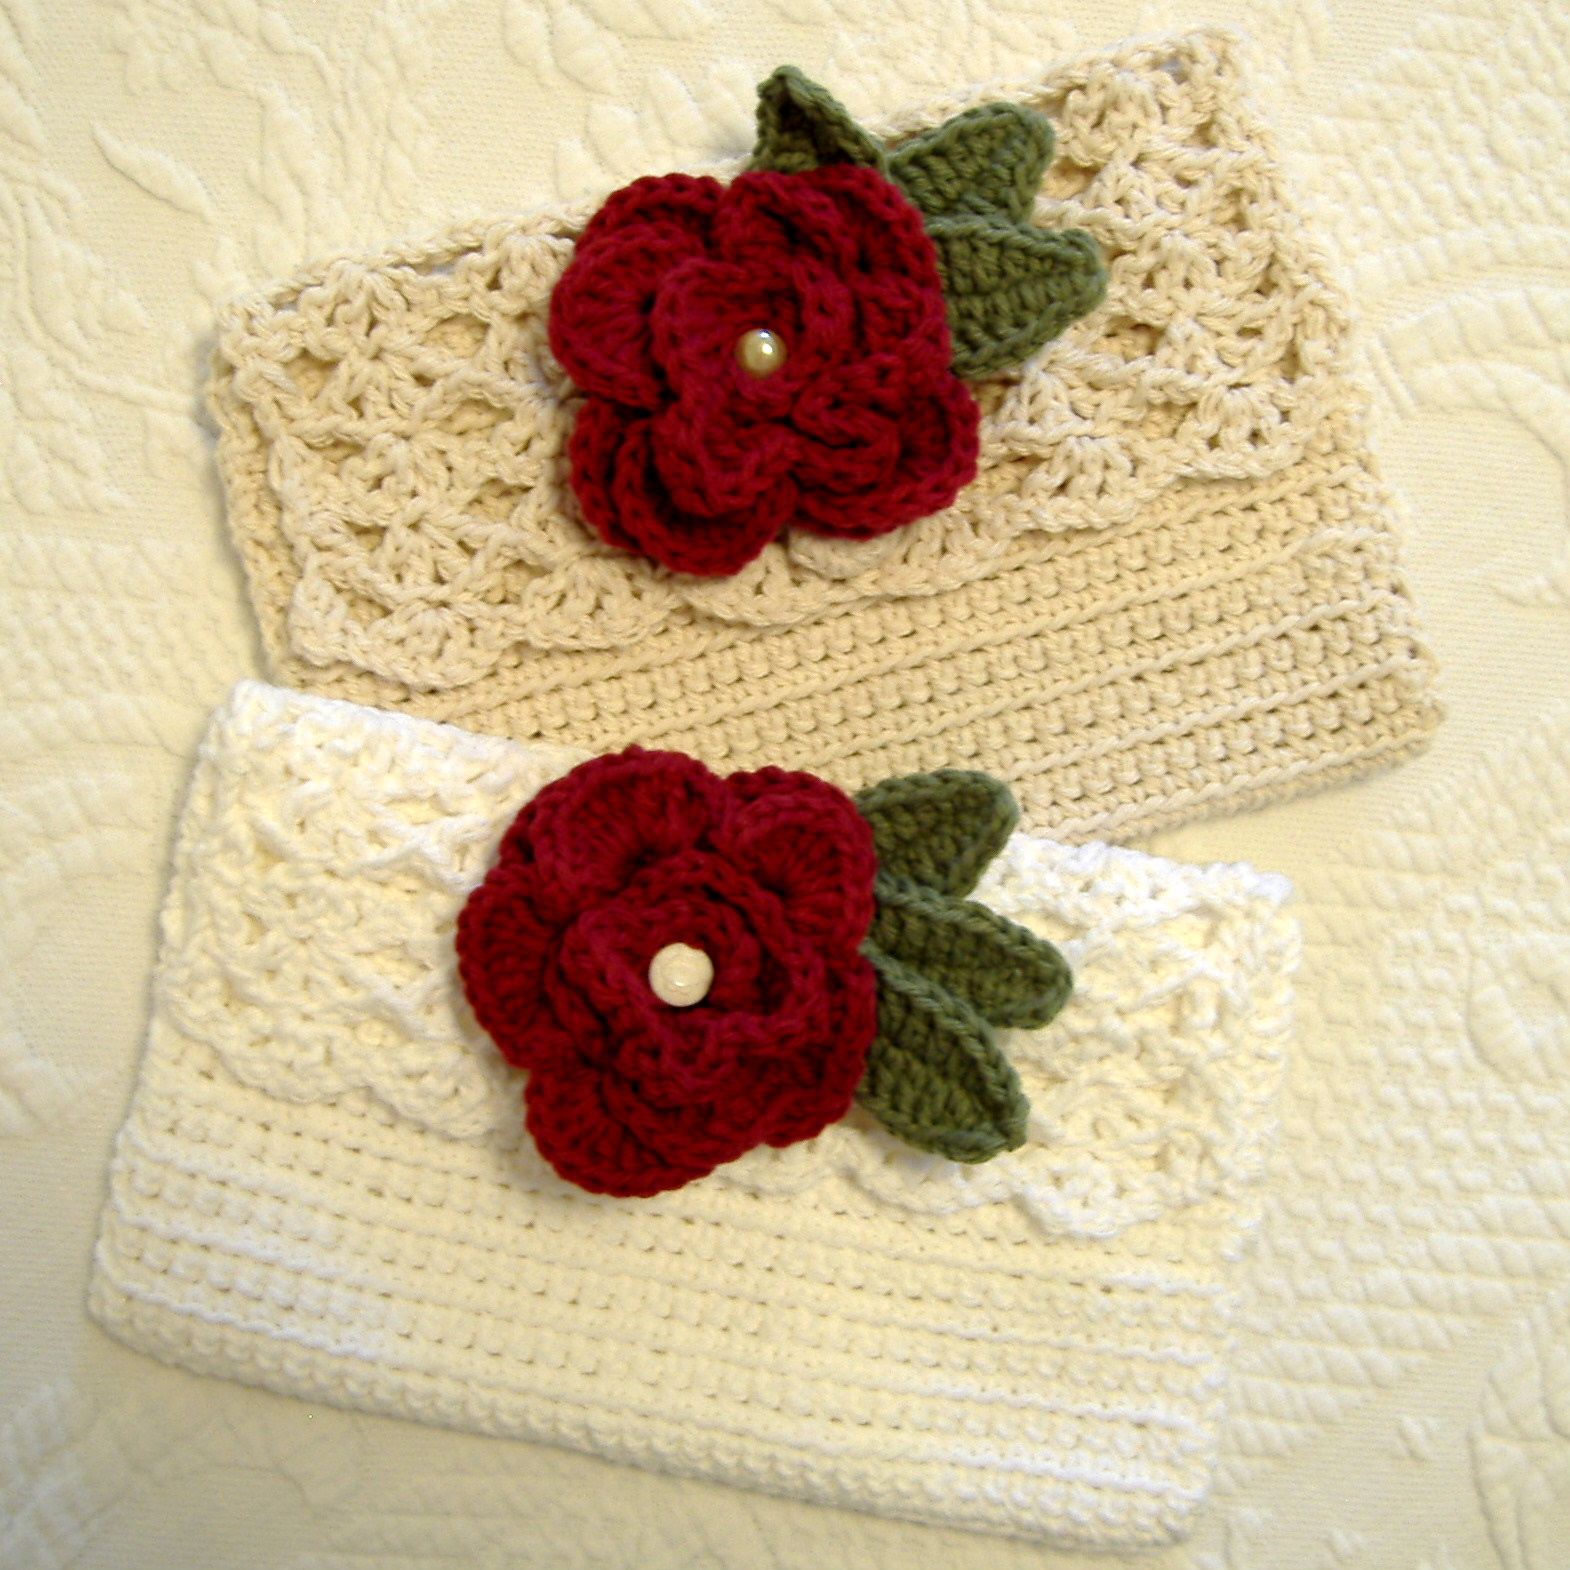 Free Crochet Patterns For Tote Bags And Purses : Free Crochet Patterns For Purses Patterns Gallery